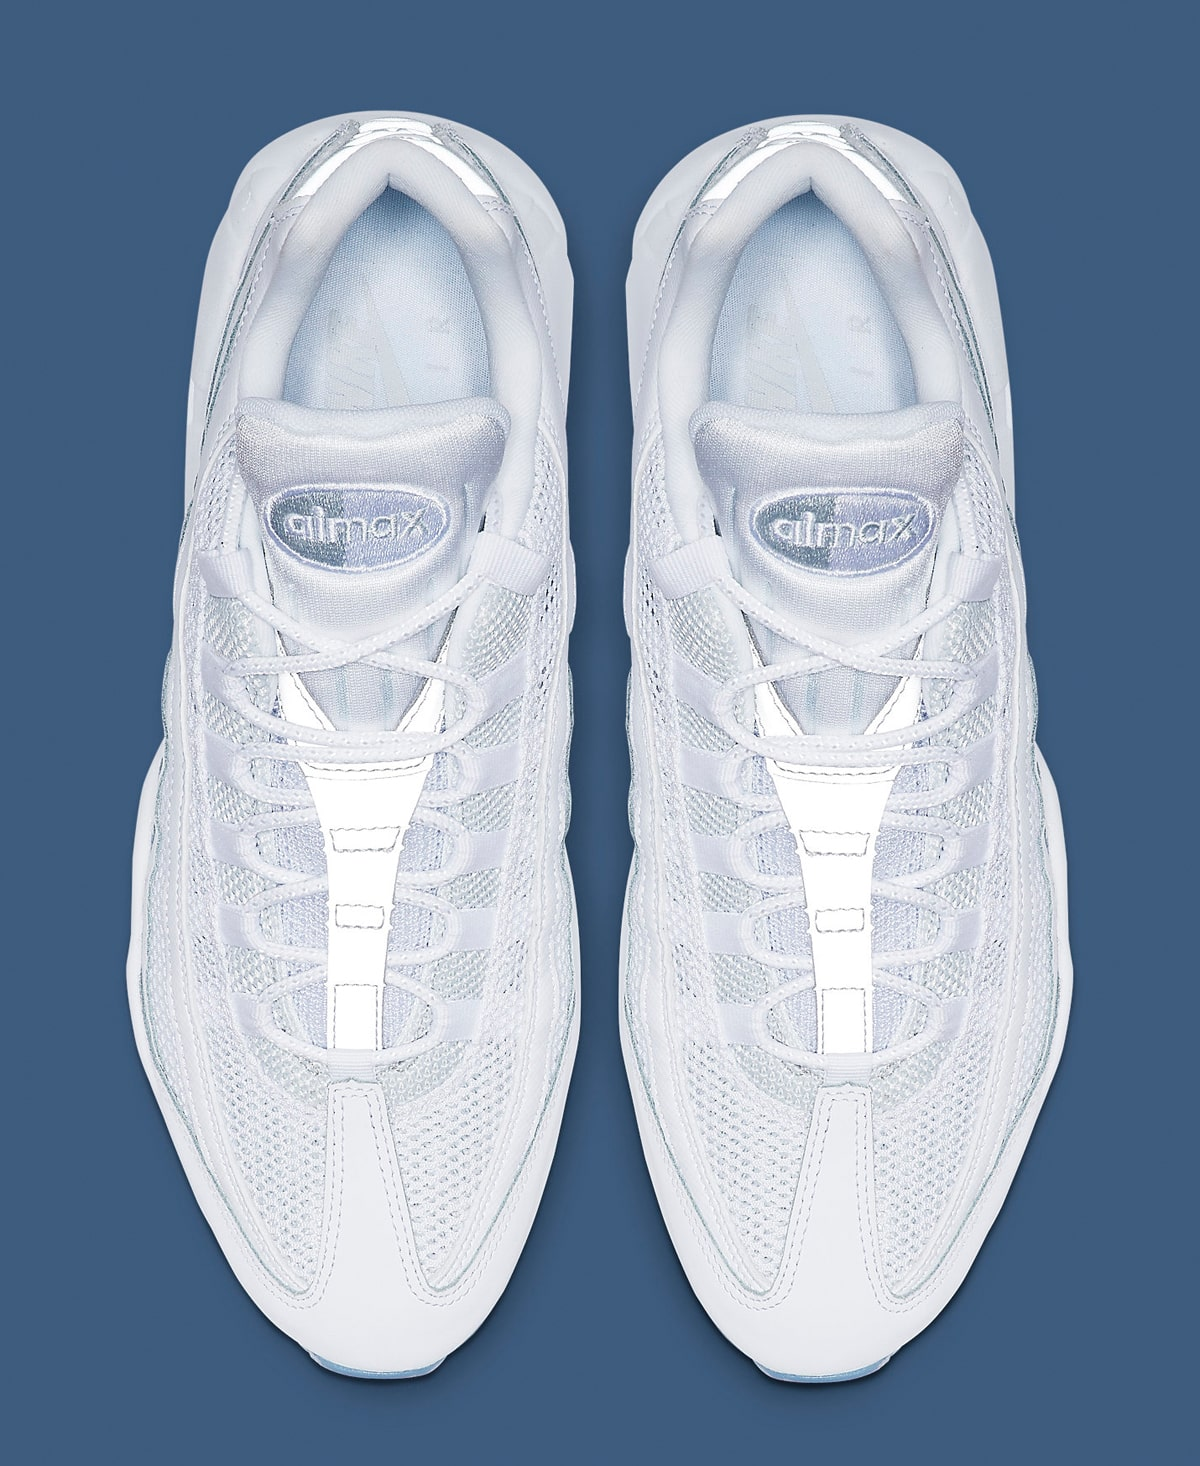 Available Now Icy Soles Hit the Iconic Air Max 95 for